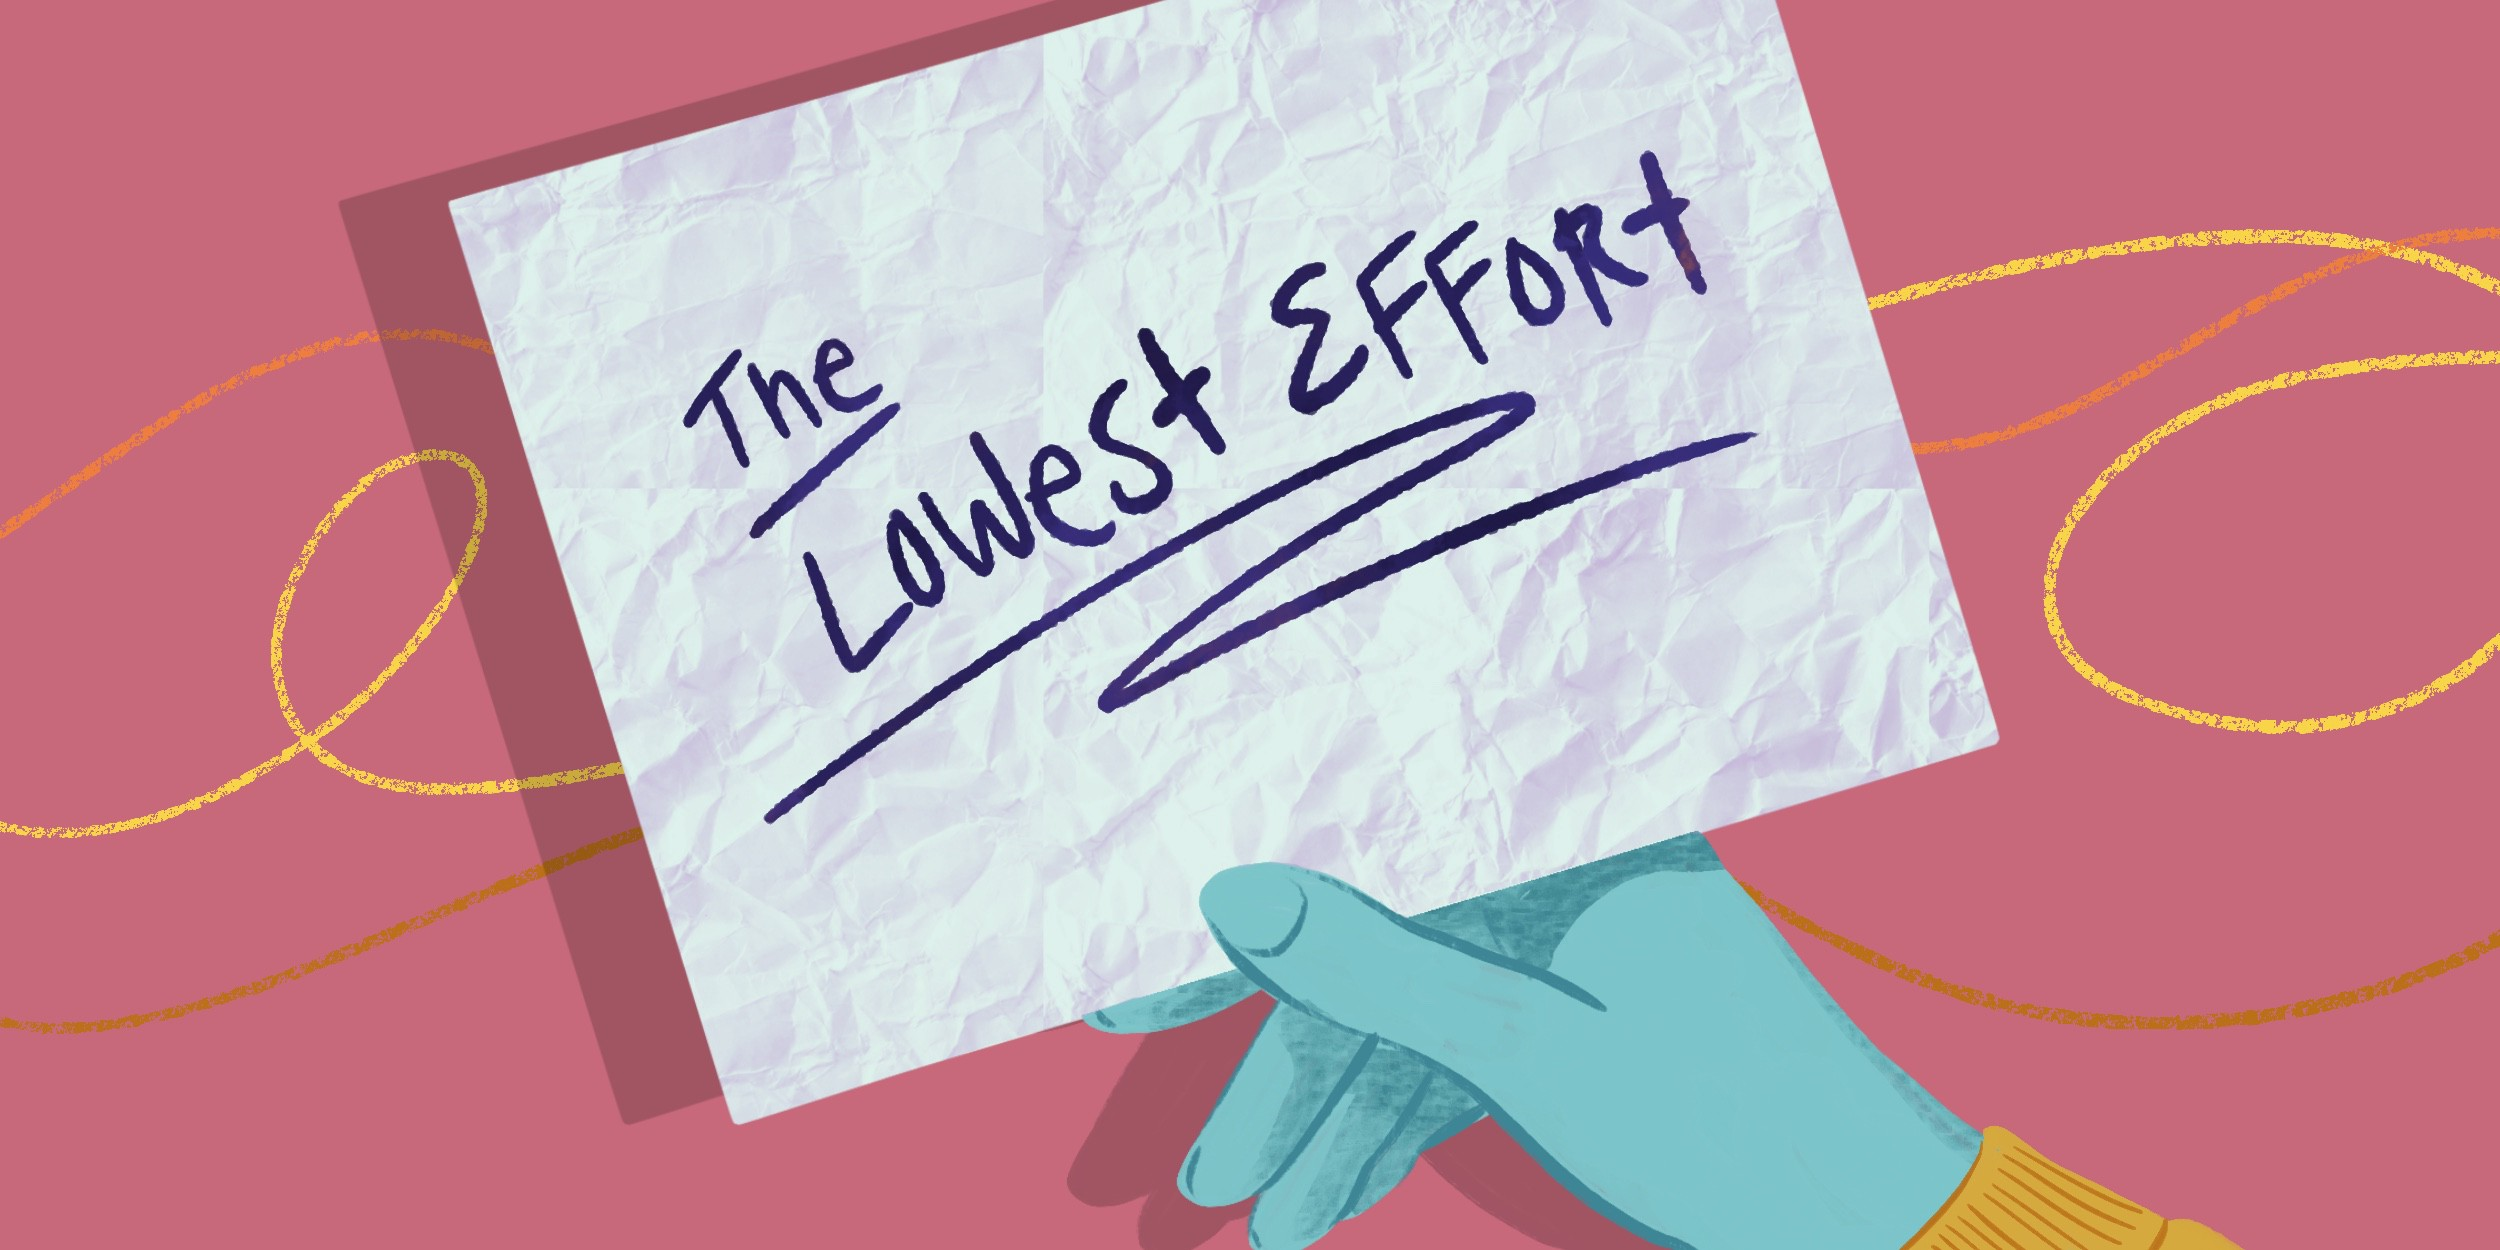 """An illustration of a teal colored hand holding a piece of paper with """"the lowest effort"""" written messily on it"""